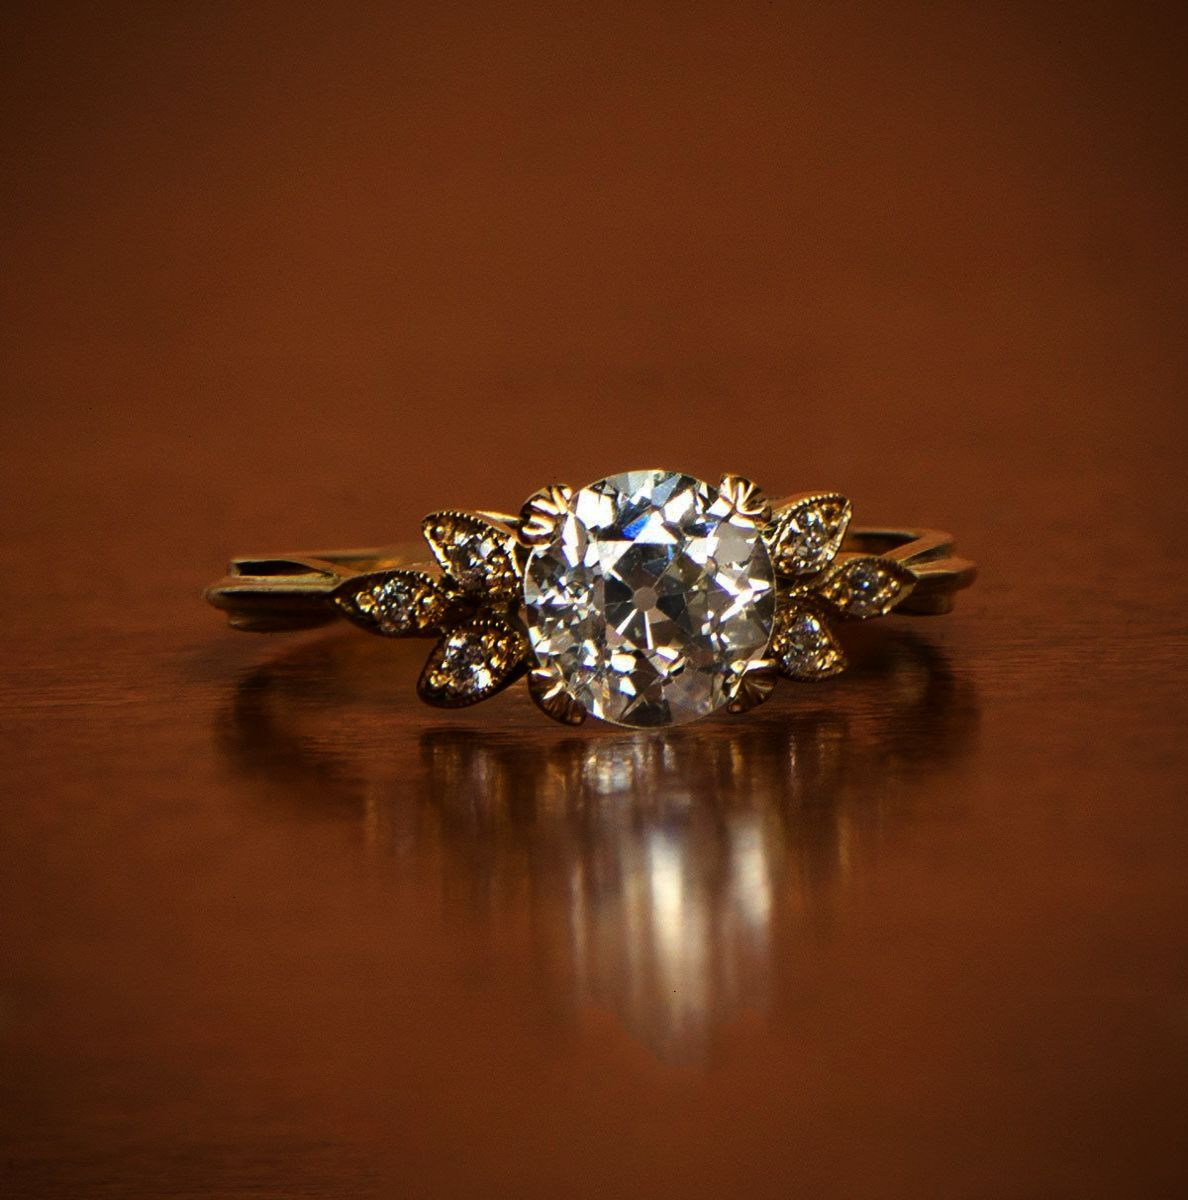 A beautiful vintage style engagement ring adorned in k gold and